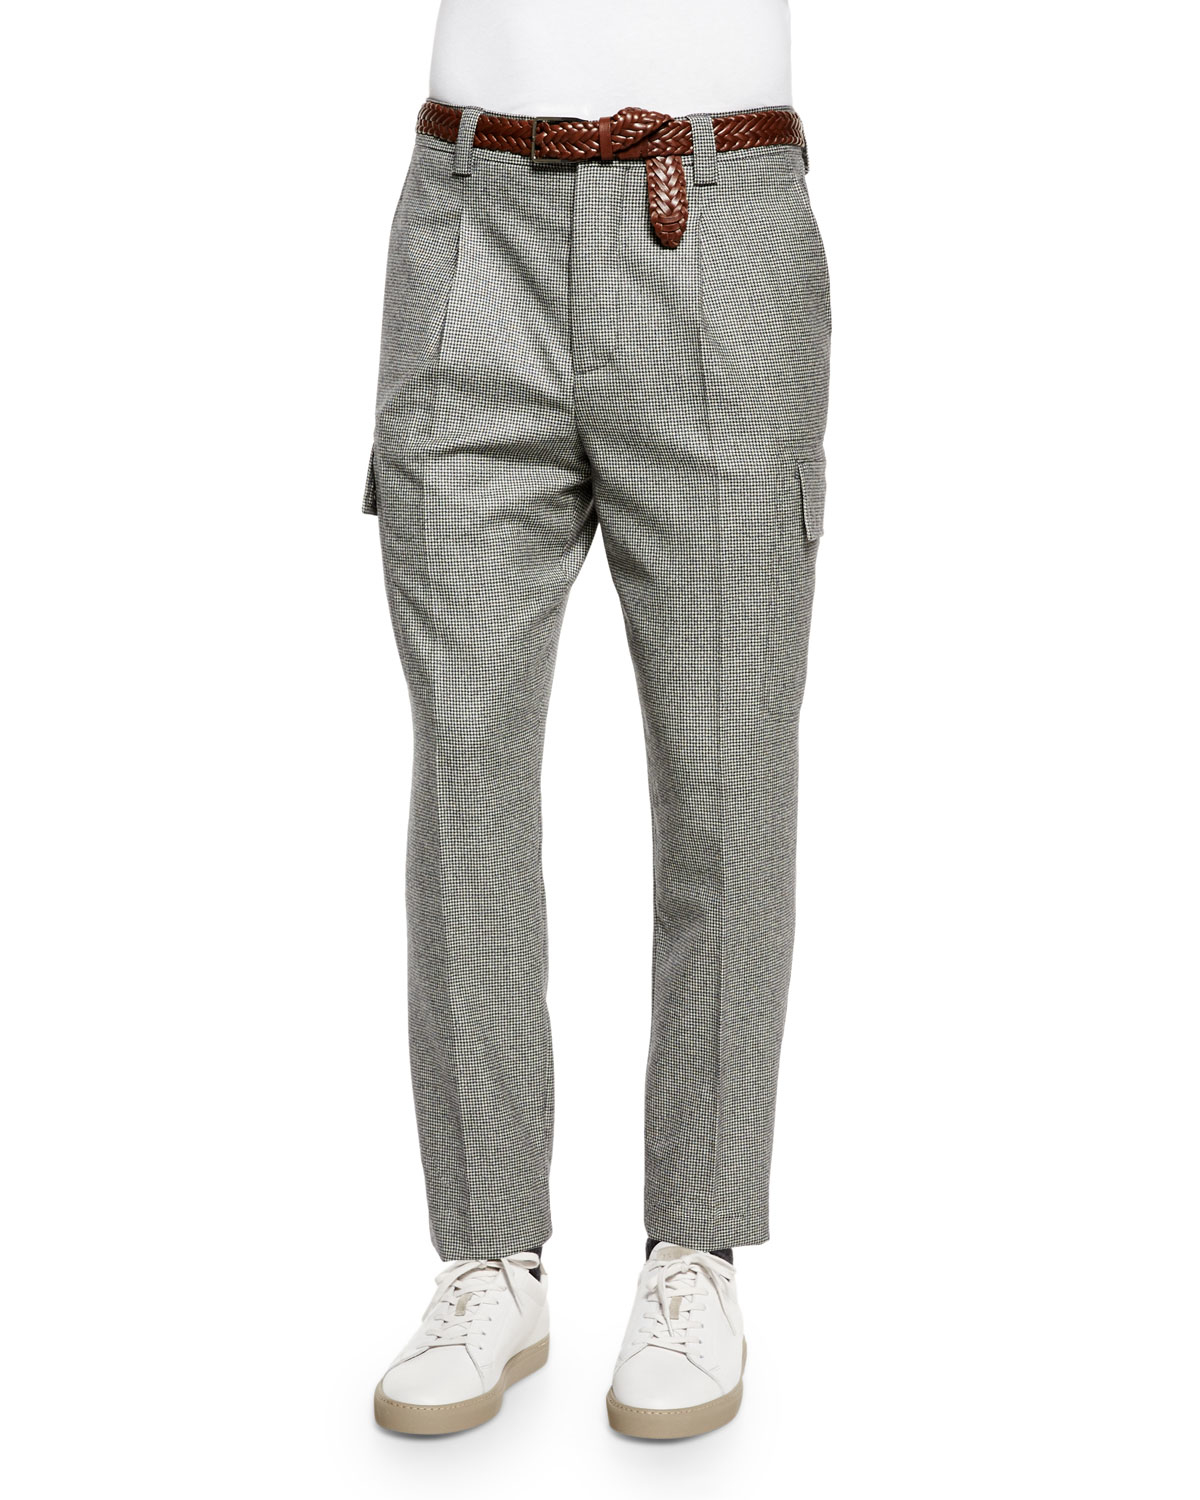 Wool jogger pants Leisure Fit grey patterned Brunello Cucinelli JHhoYH